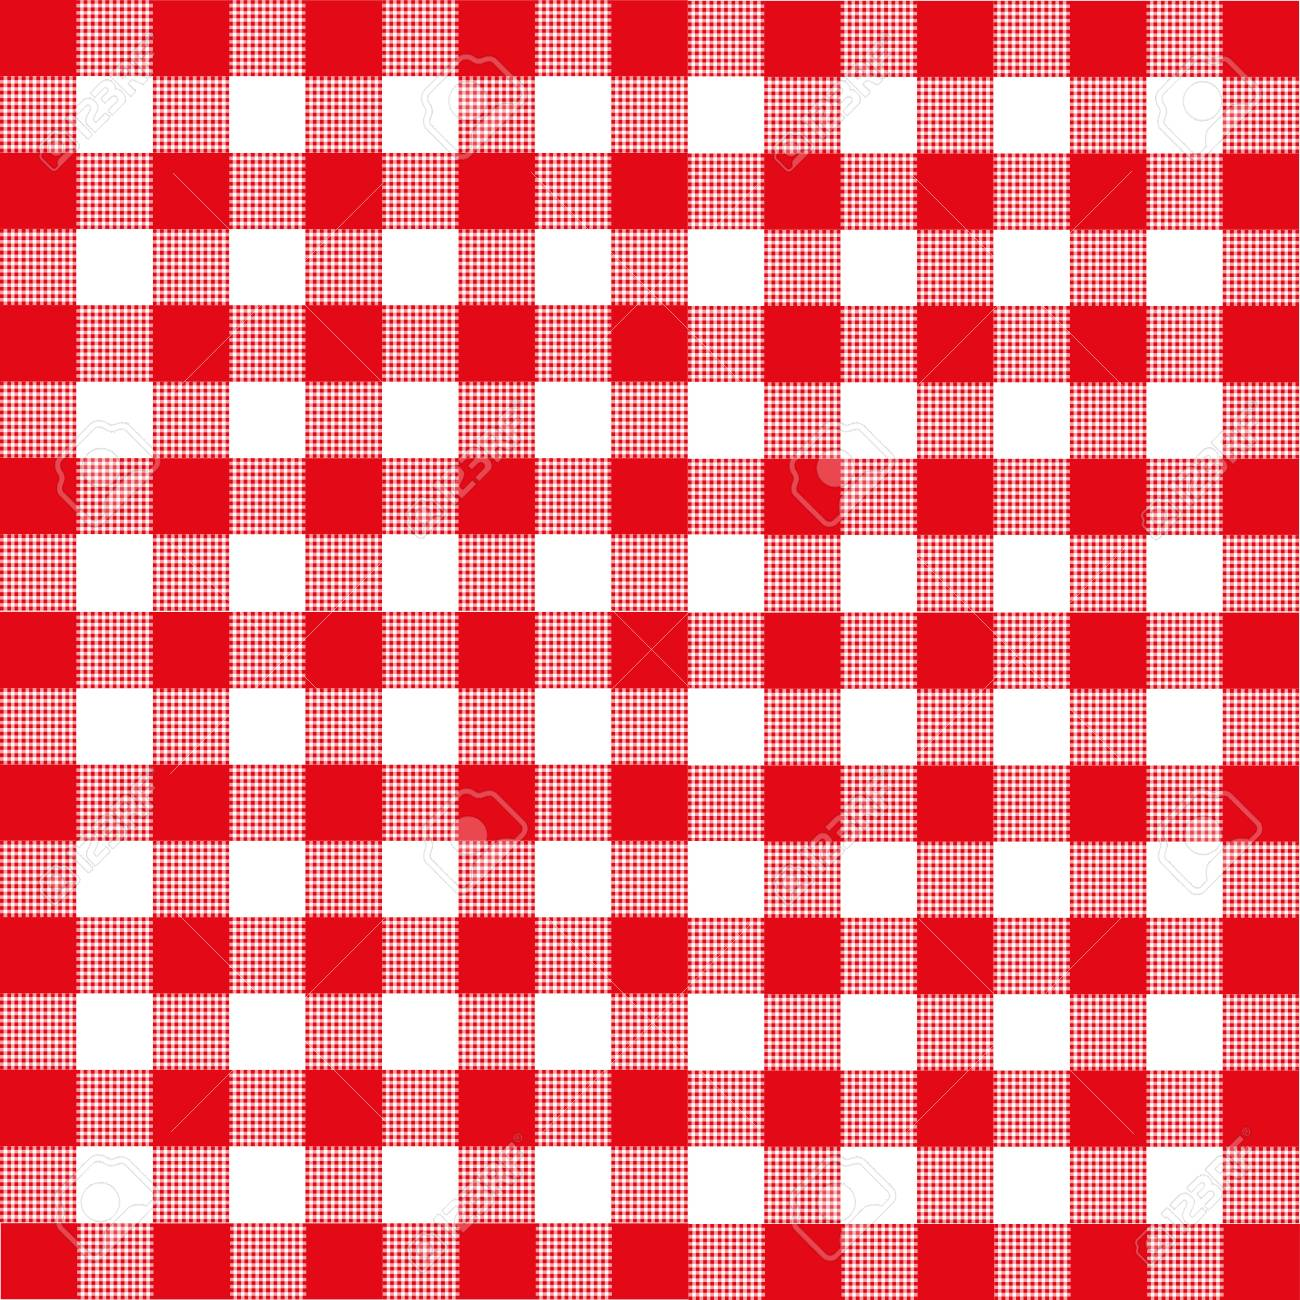 Genial Red And White Checkered Tablecloth